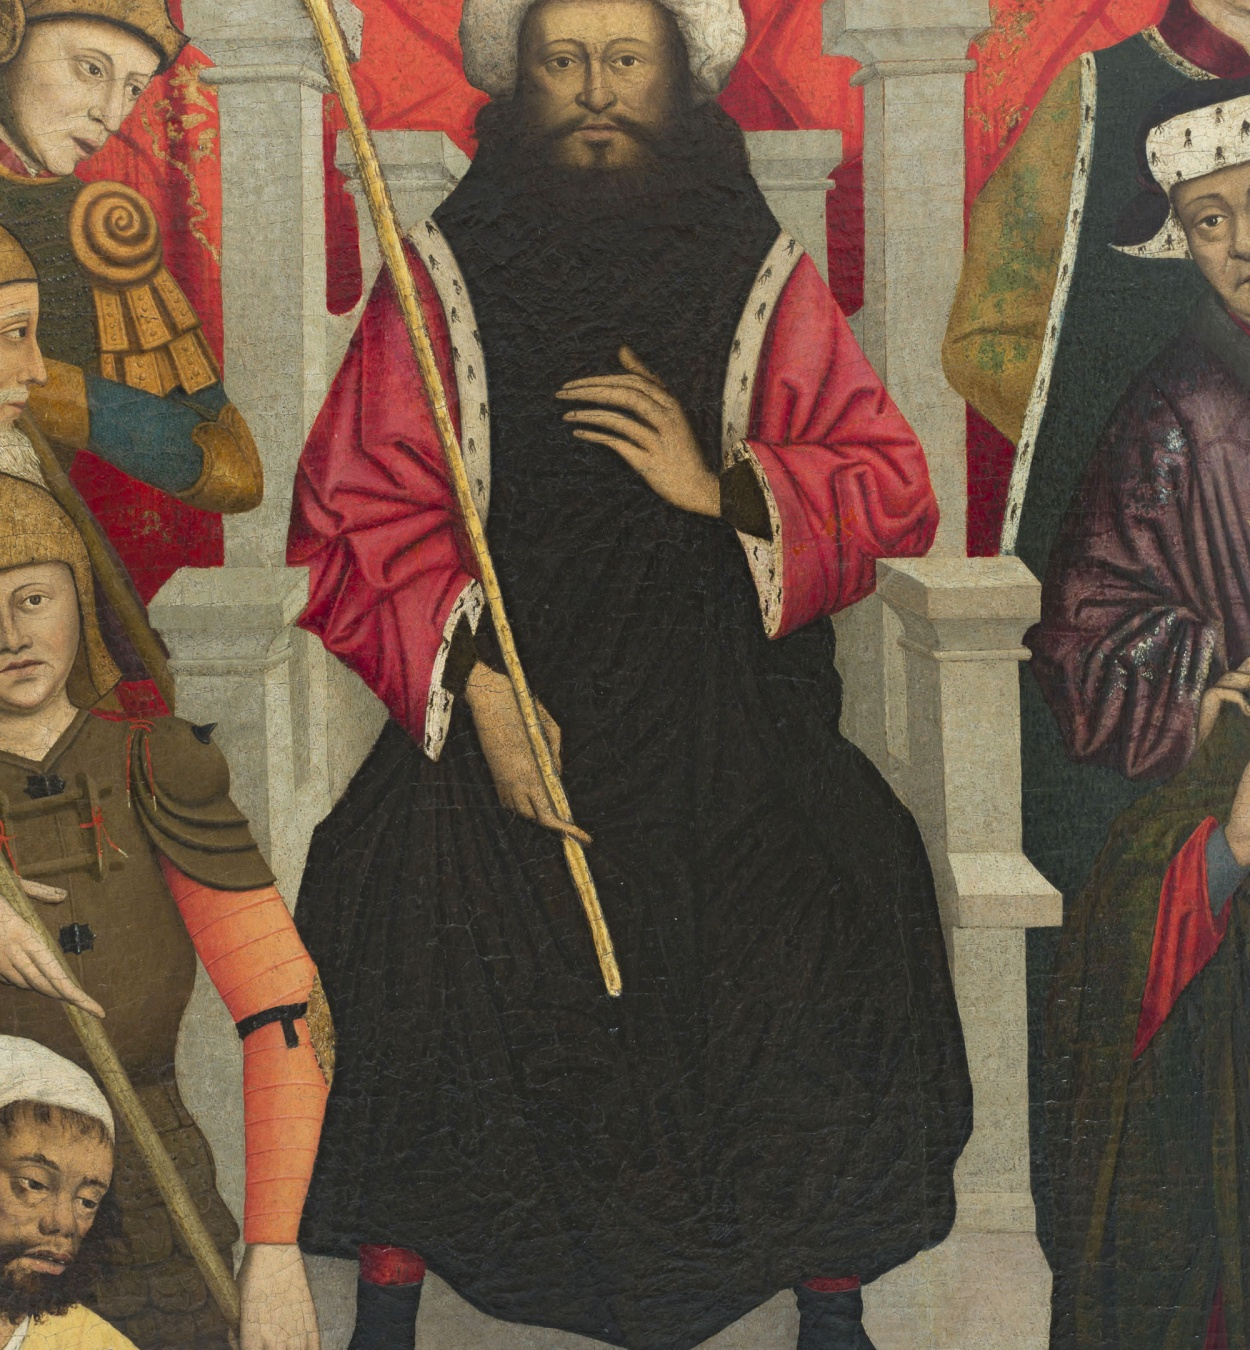 Lluís Dalmau - The Beheading of Saint Baudilus - circa 1448 [1]